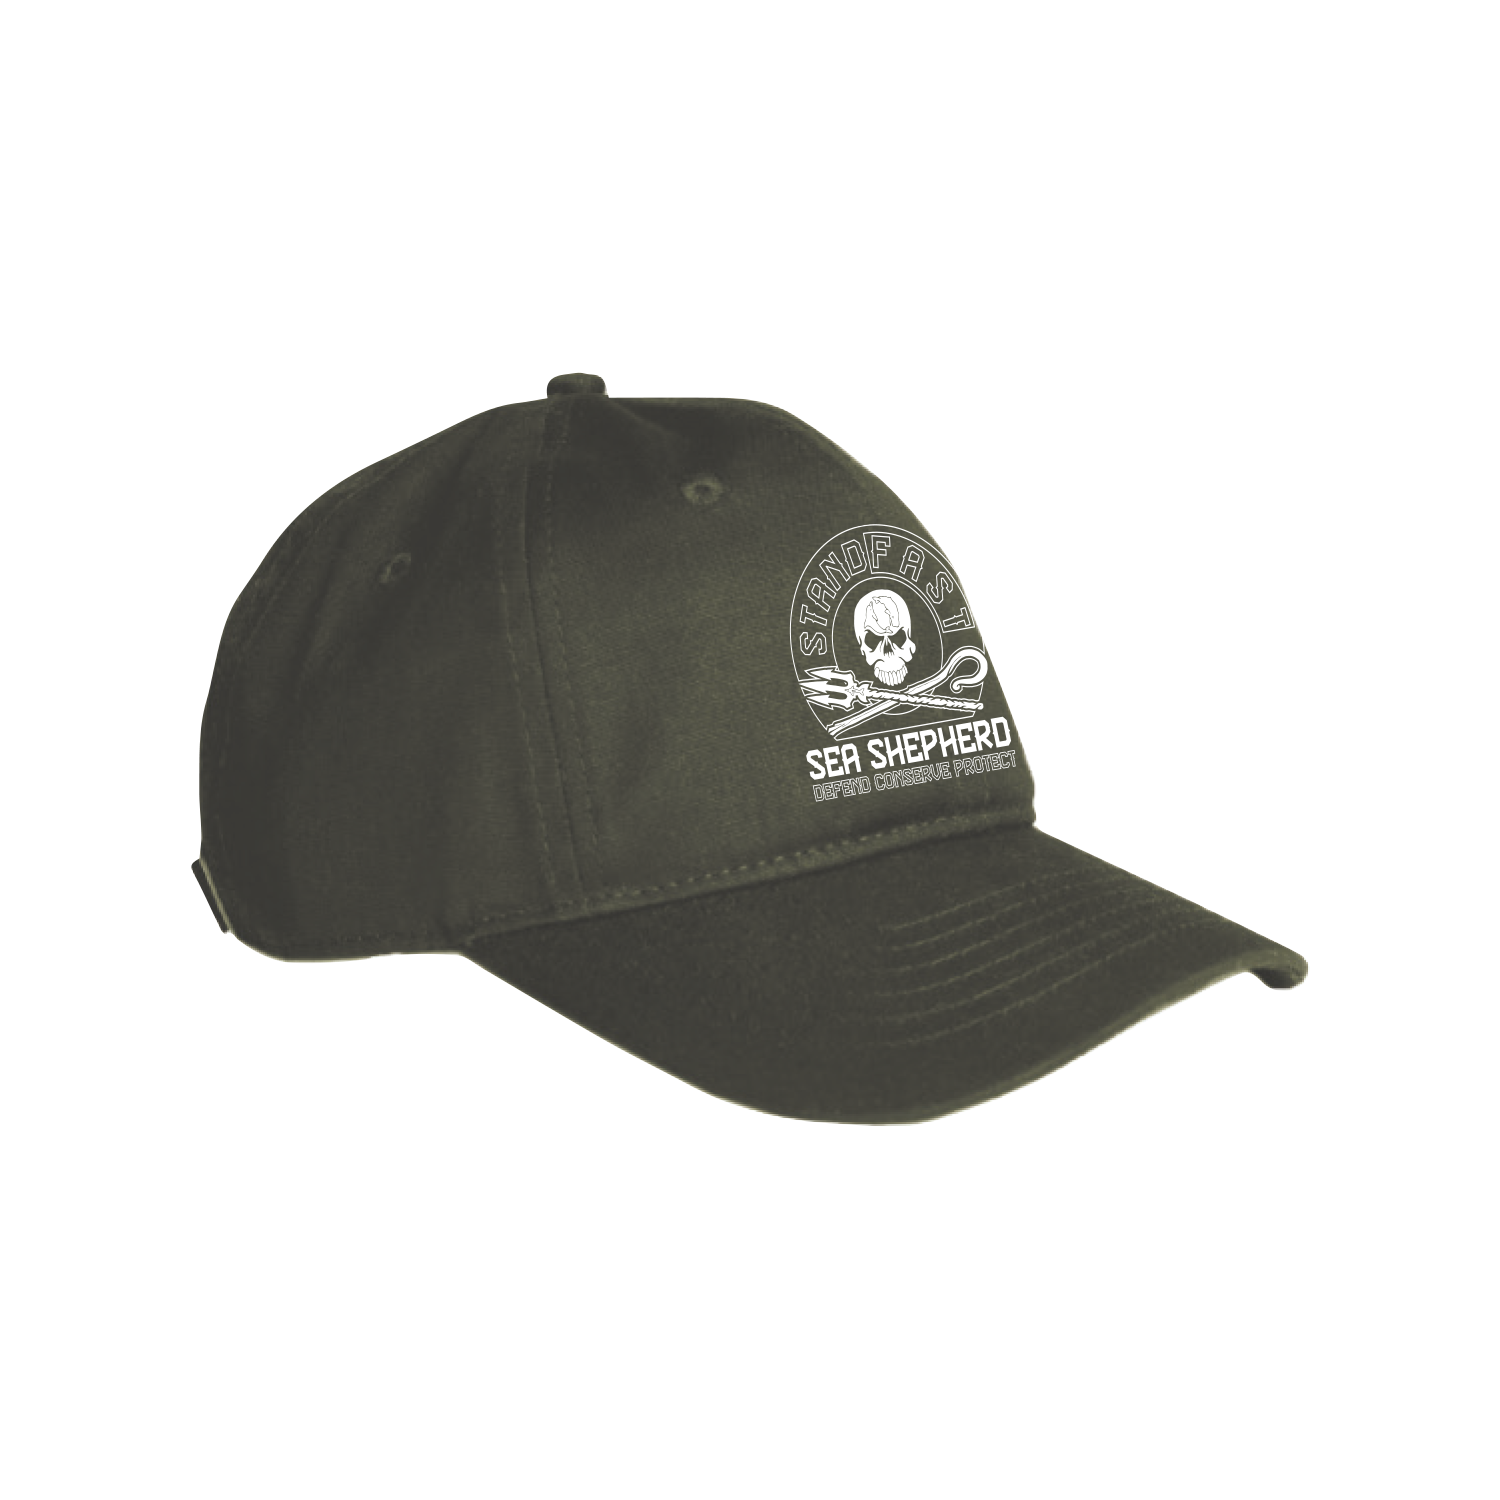 Sea Shepherd - Standfast - Ships Cargo Stamp - 100% Organic Cotton Cap - Washed Green